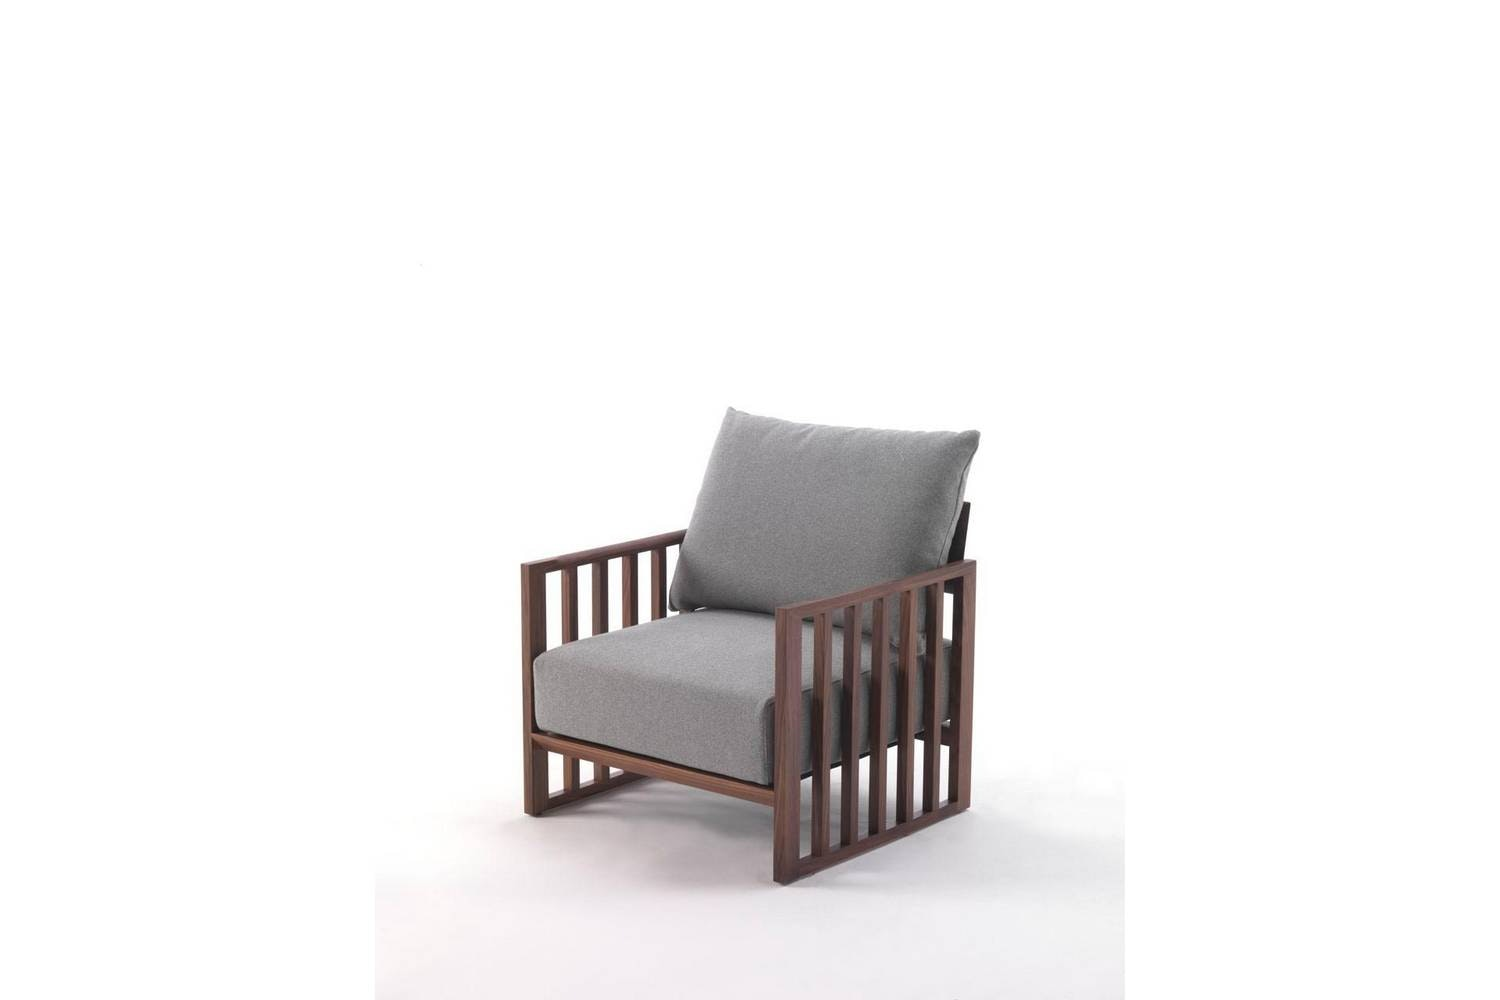 Bolerina Armchair by T. Colzani for Porada